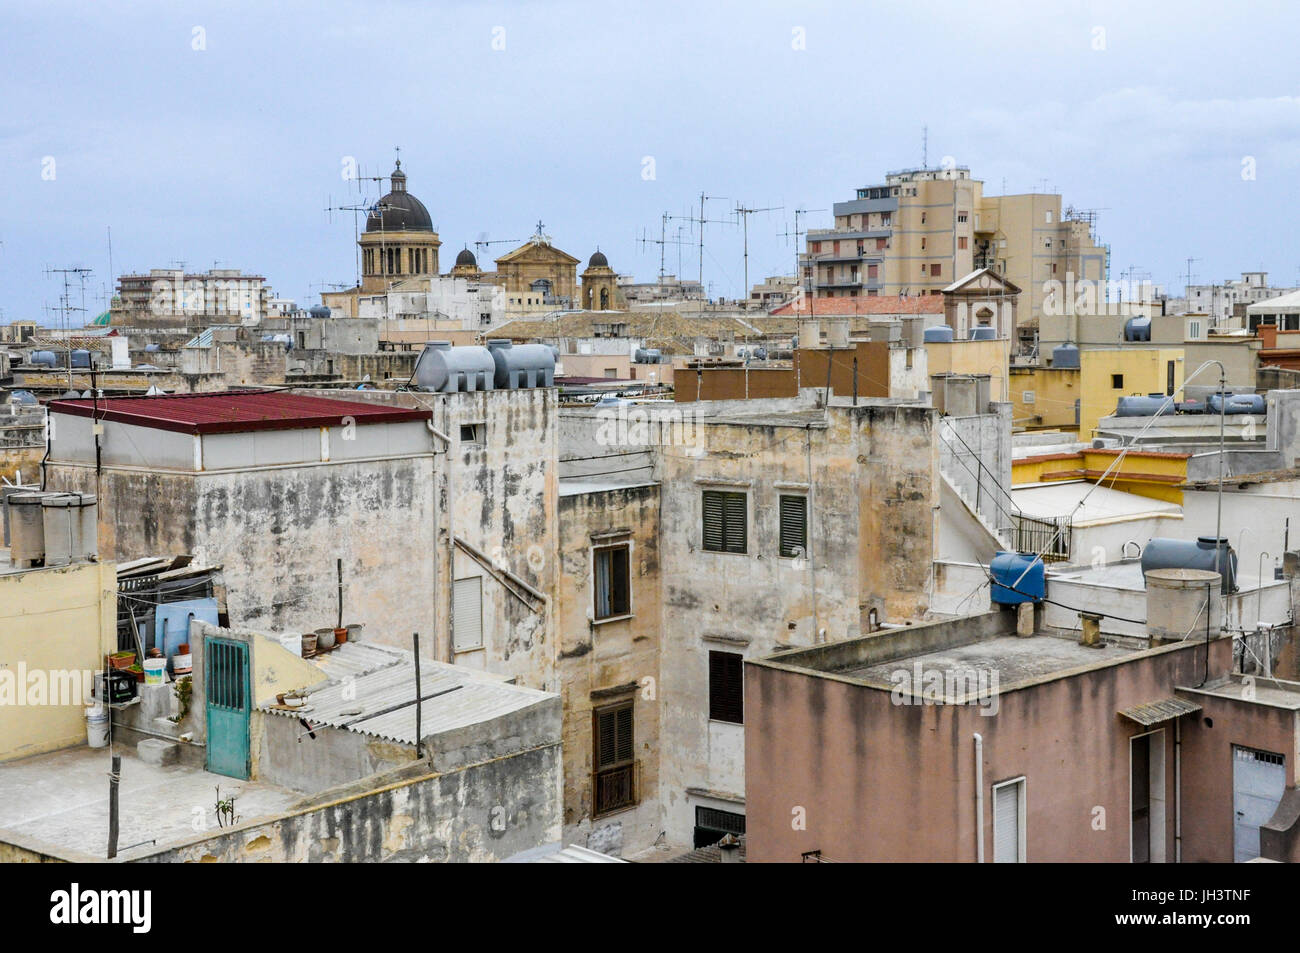 Television aerials on the rooftops of apartments in the town of Marsala, Trapani, Sicily, Italy. - Stock Image